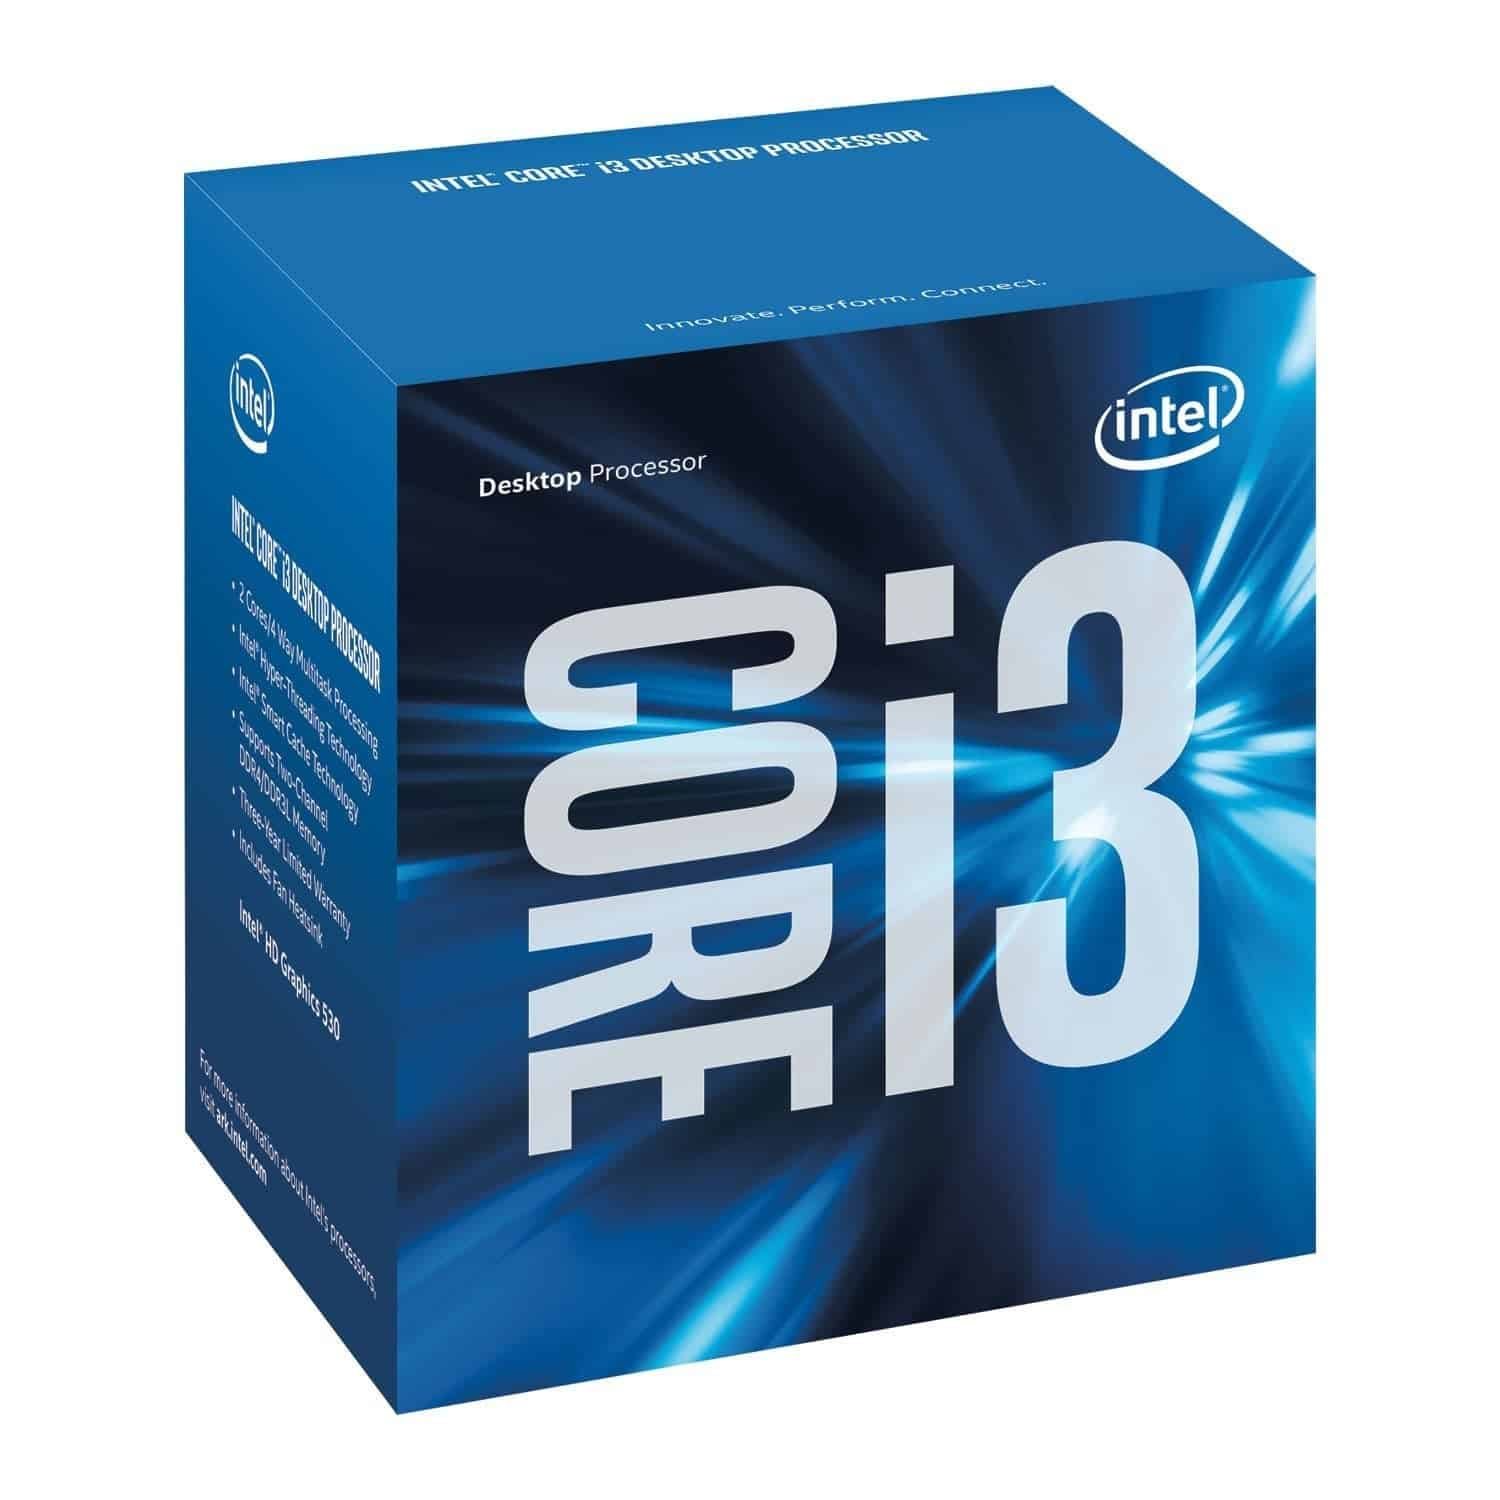 Intel Core i3-6100 custom pc